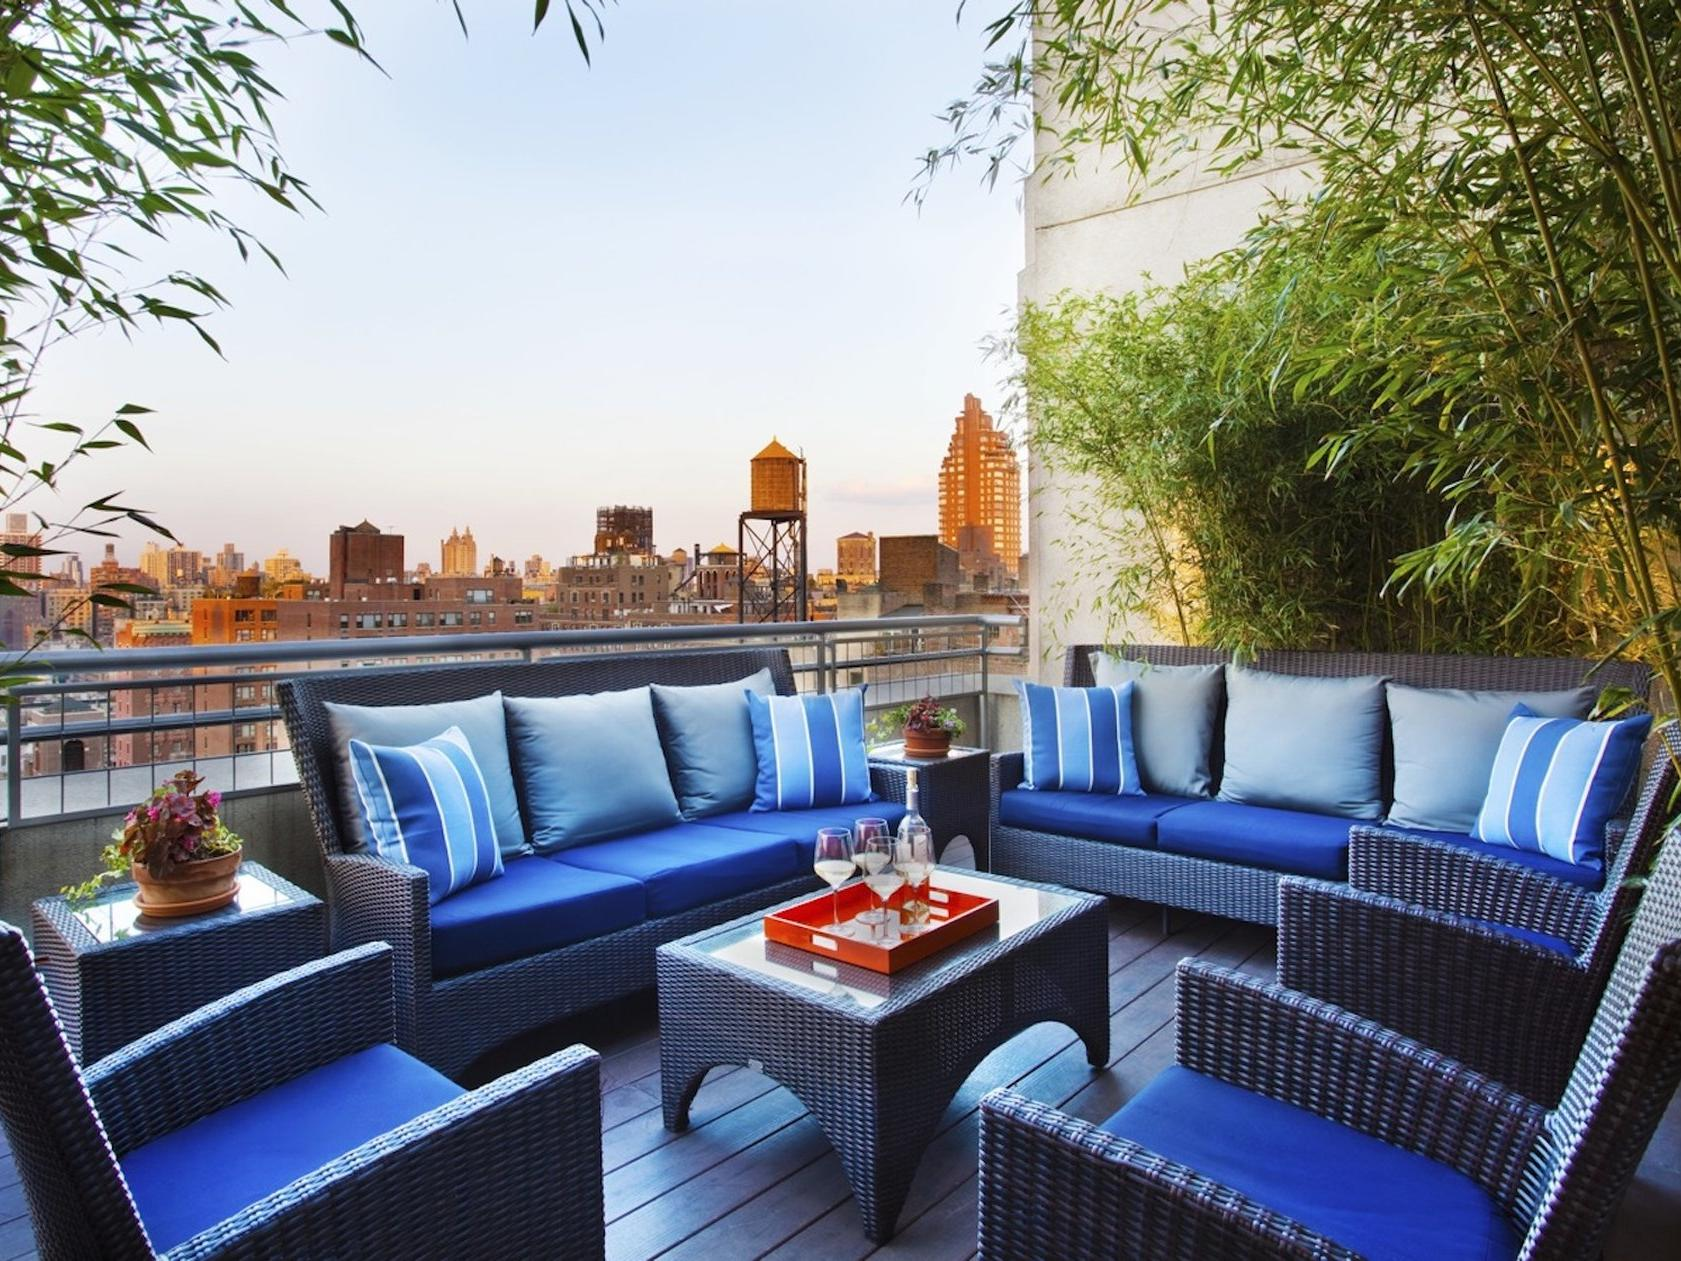 chairs and couches on a rooftop